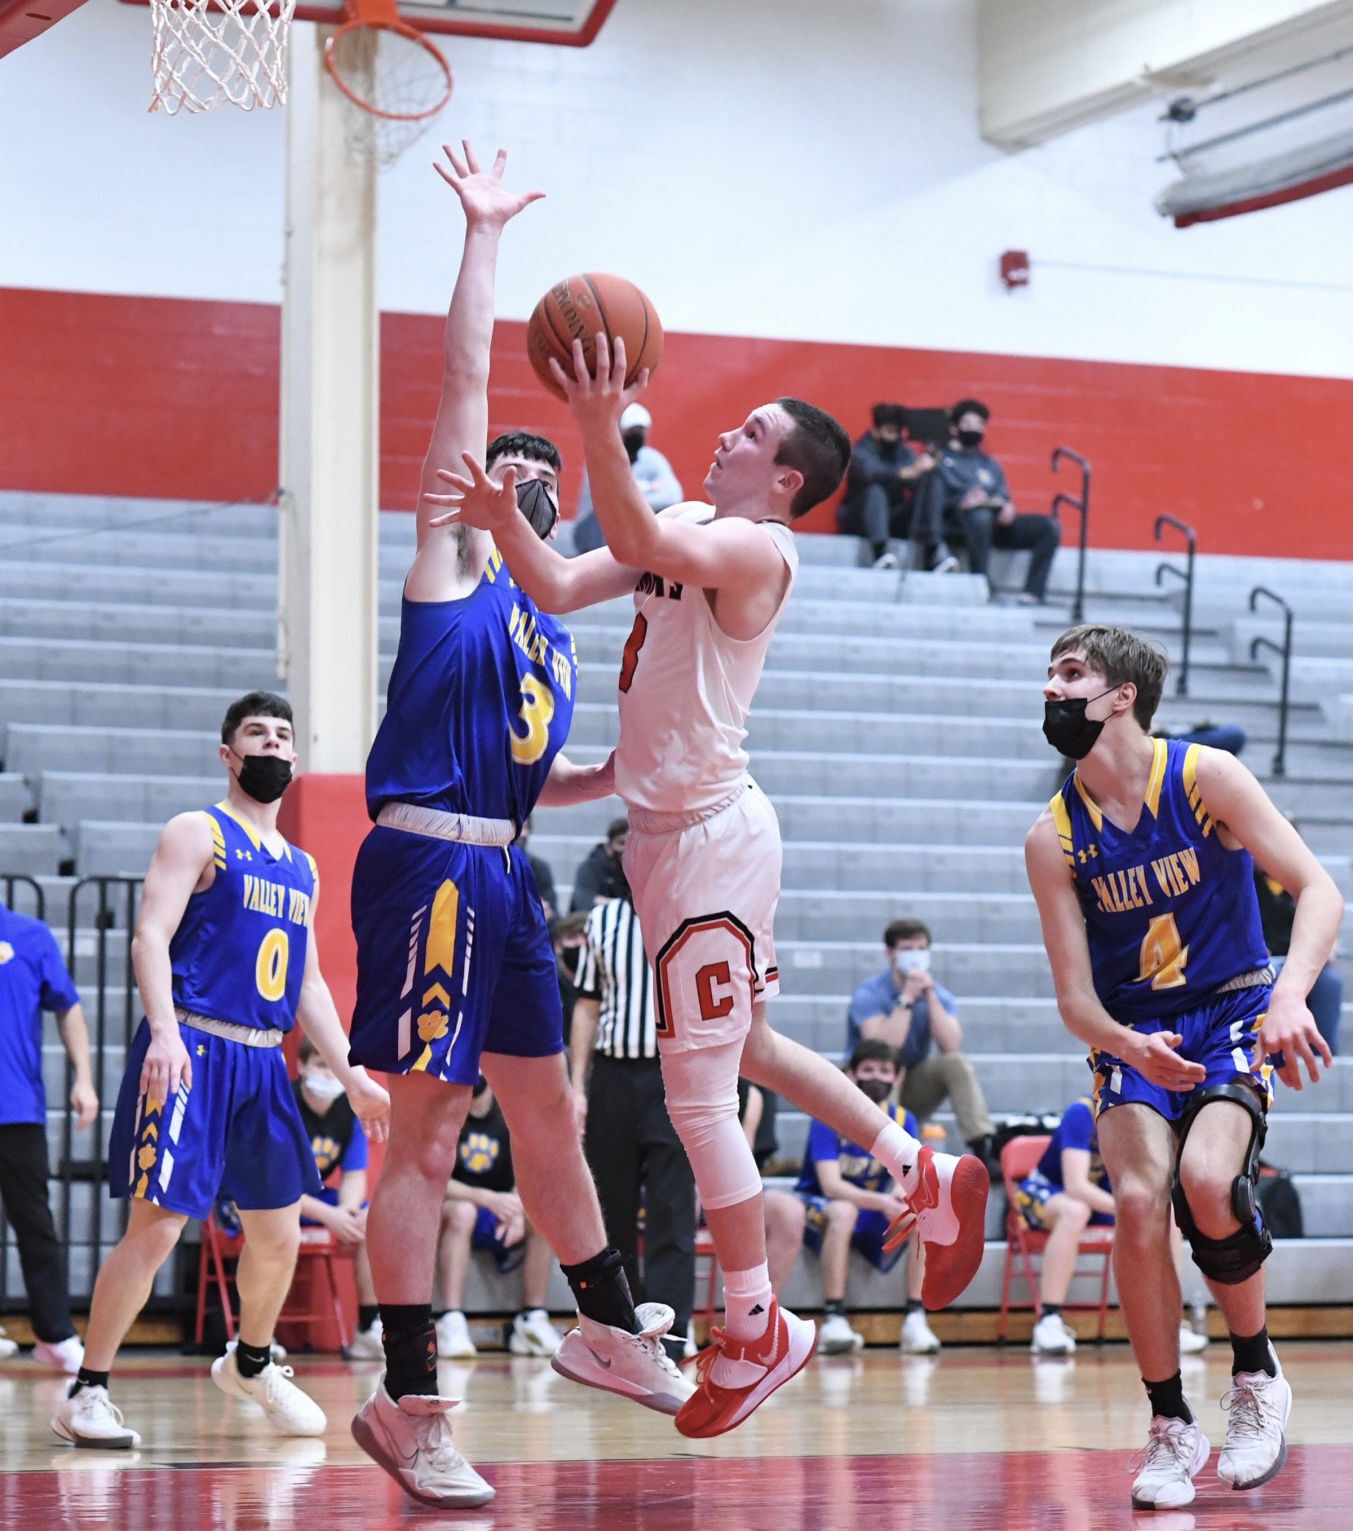 H.S. BOYS' BASKETBALL: 'Confident' Comets preparing for Chester challenge